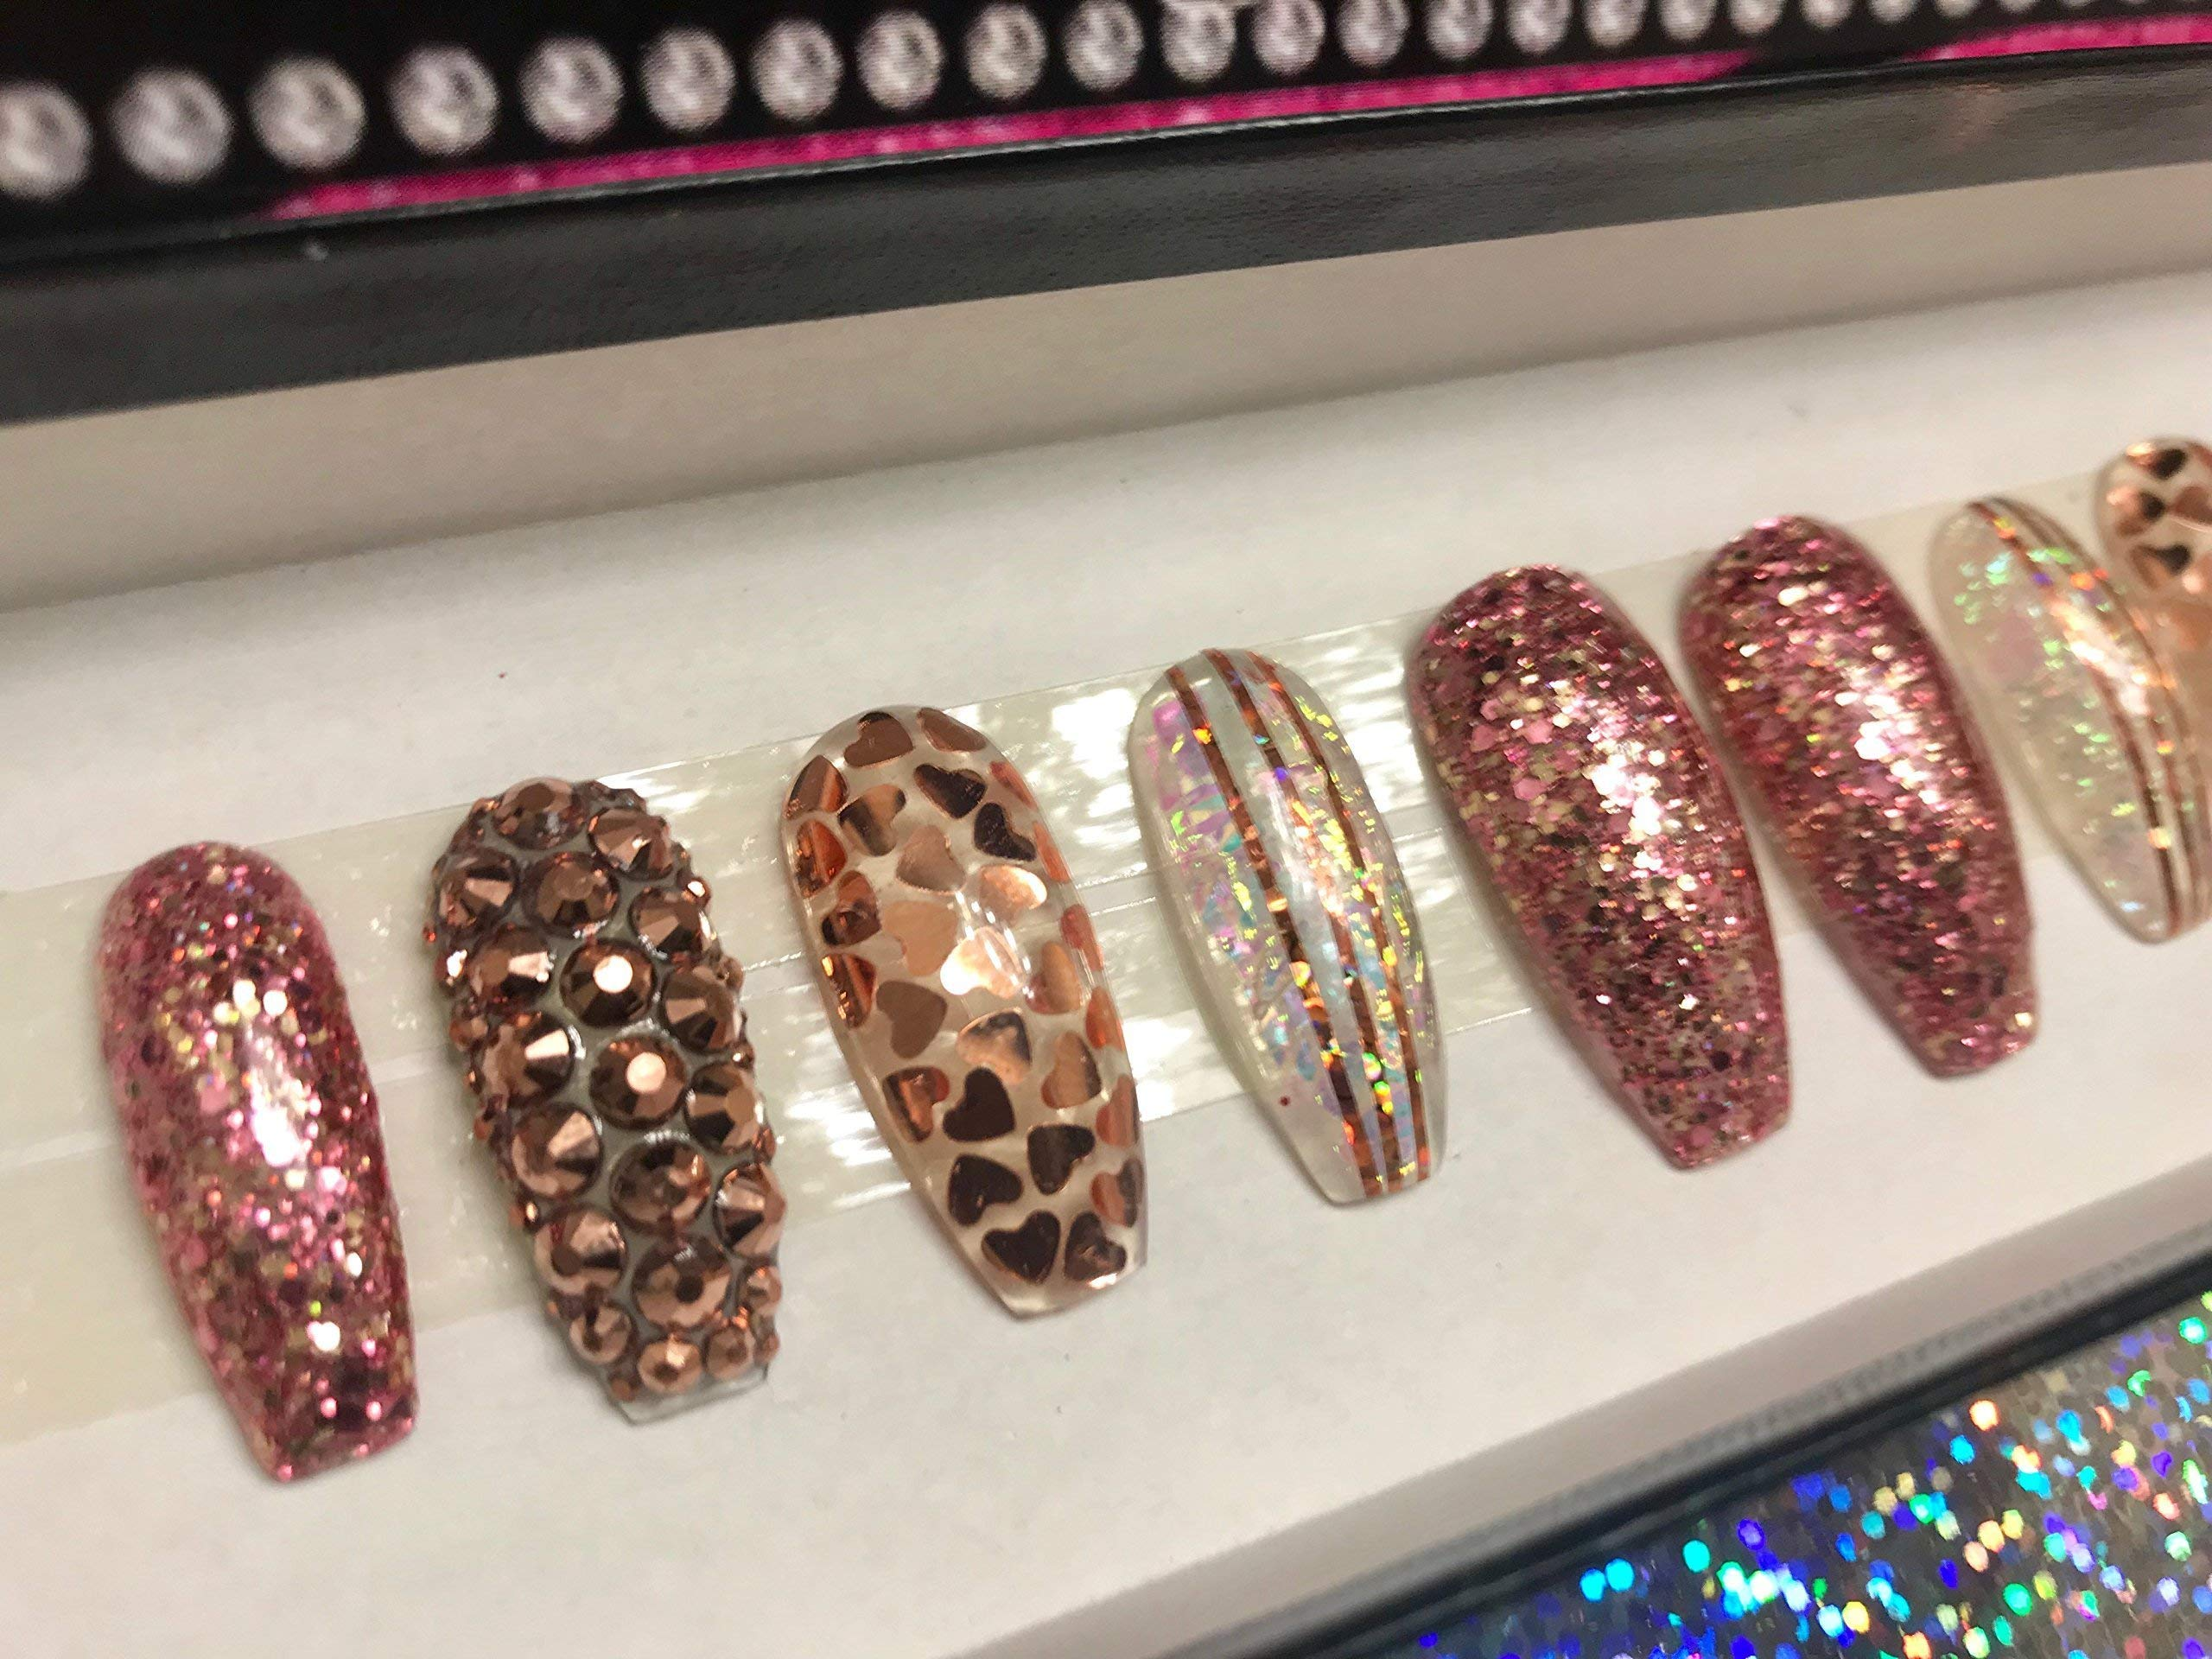 Heart of Rose Gold Rose Gold Nails Hand Designed Nails Fake Nails Designer Nails False Nails Heart Nails Glitter Nails